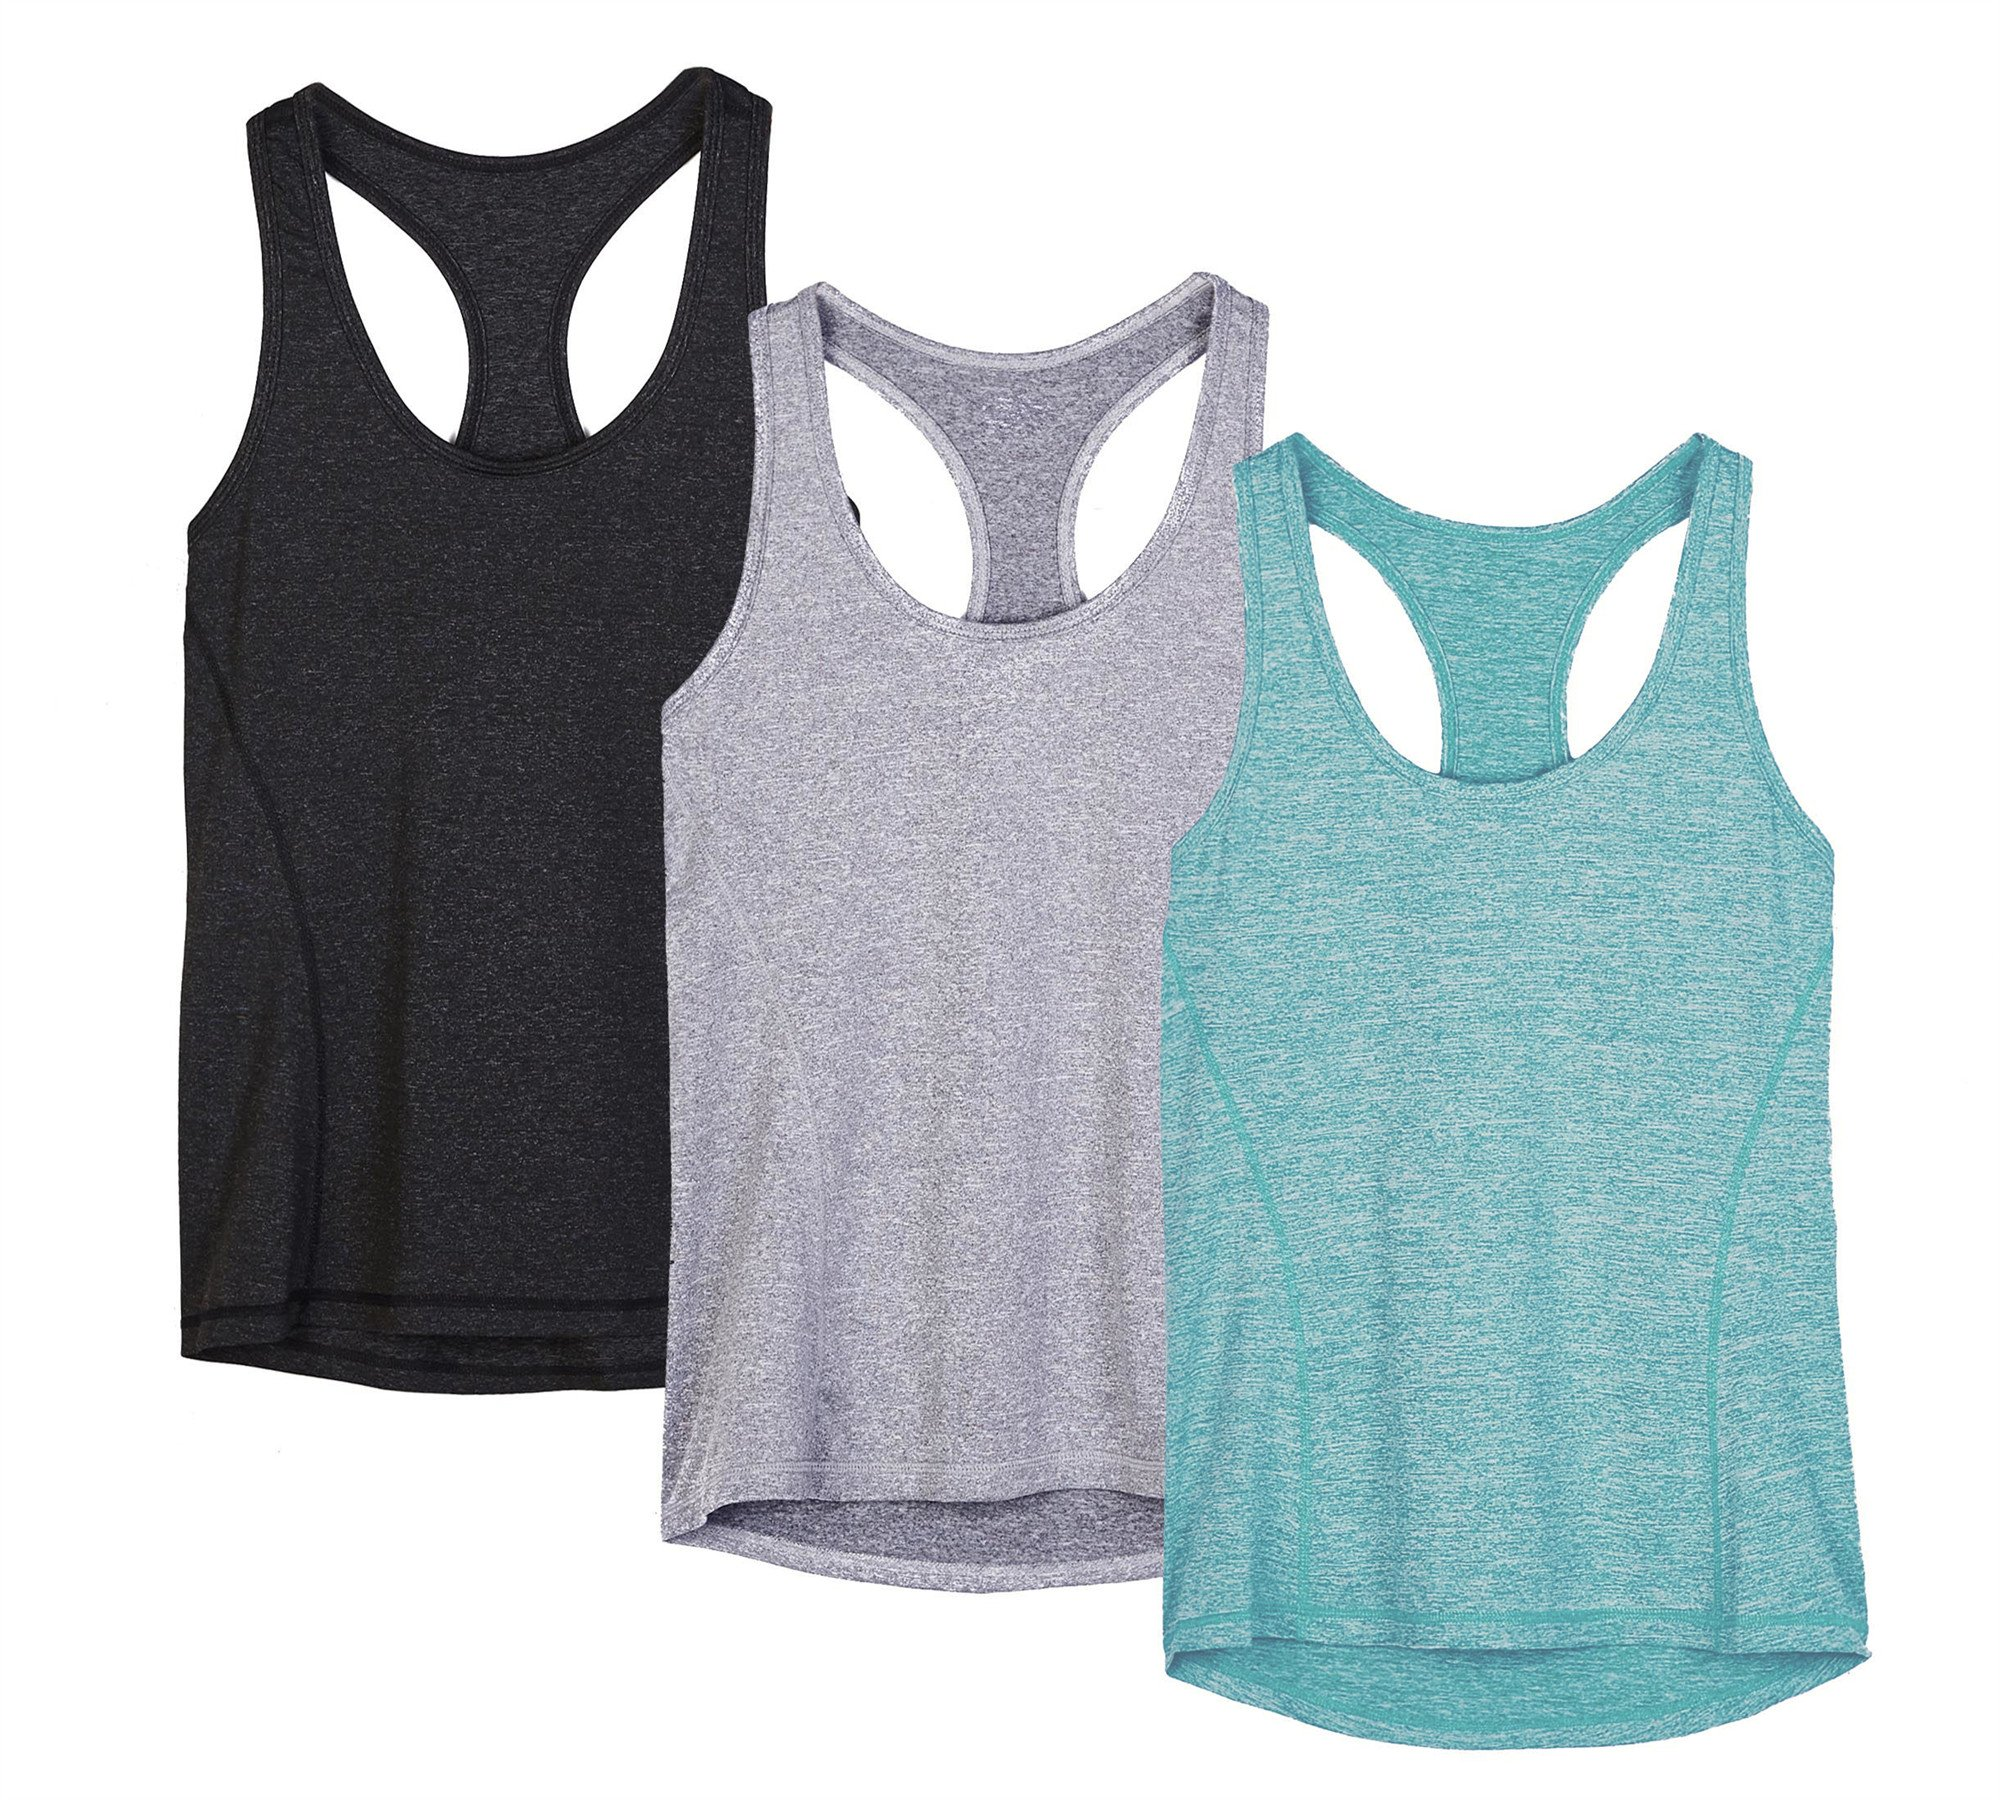 icyzone Activewear Running Workouts Clothes Yoga Racerback Tank Tops Women (M, Black/Granite/Green)